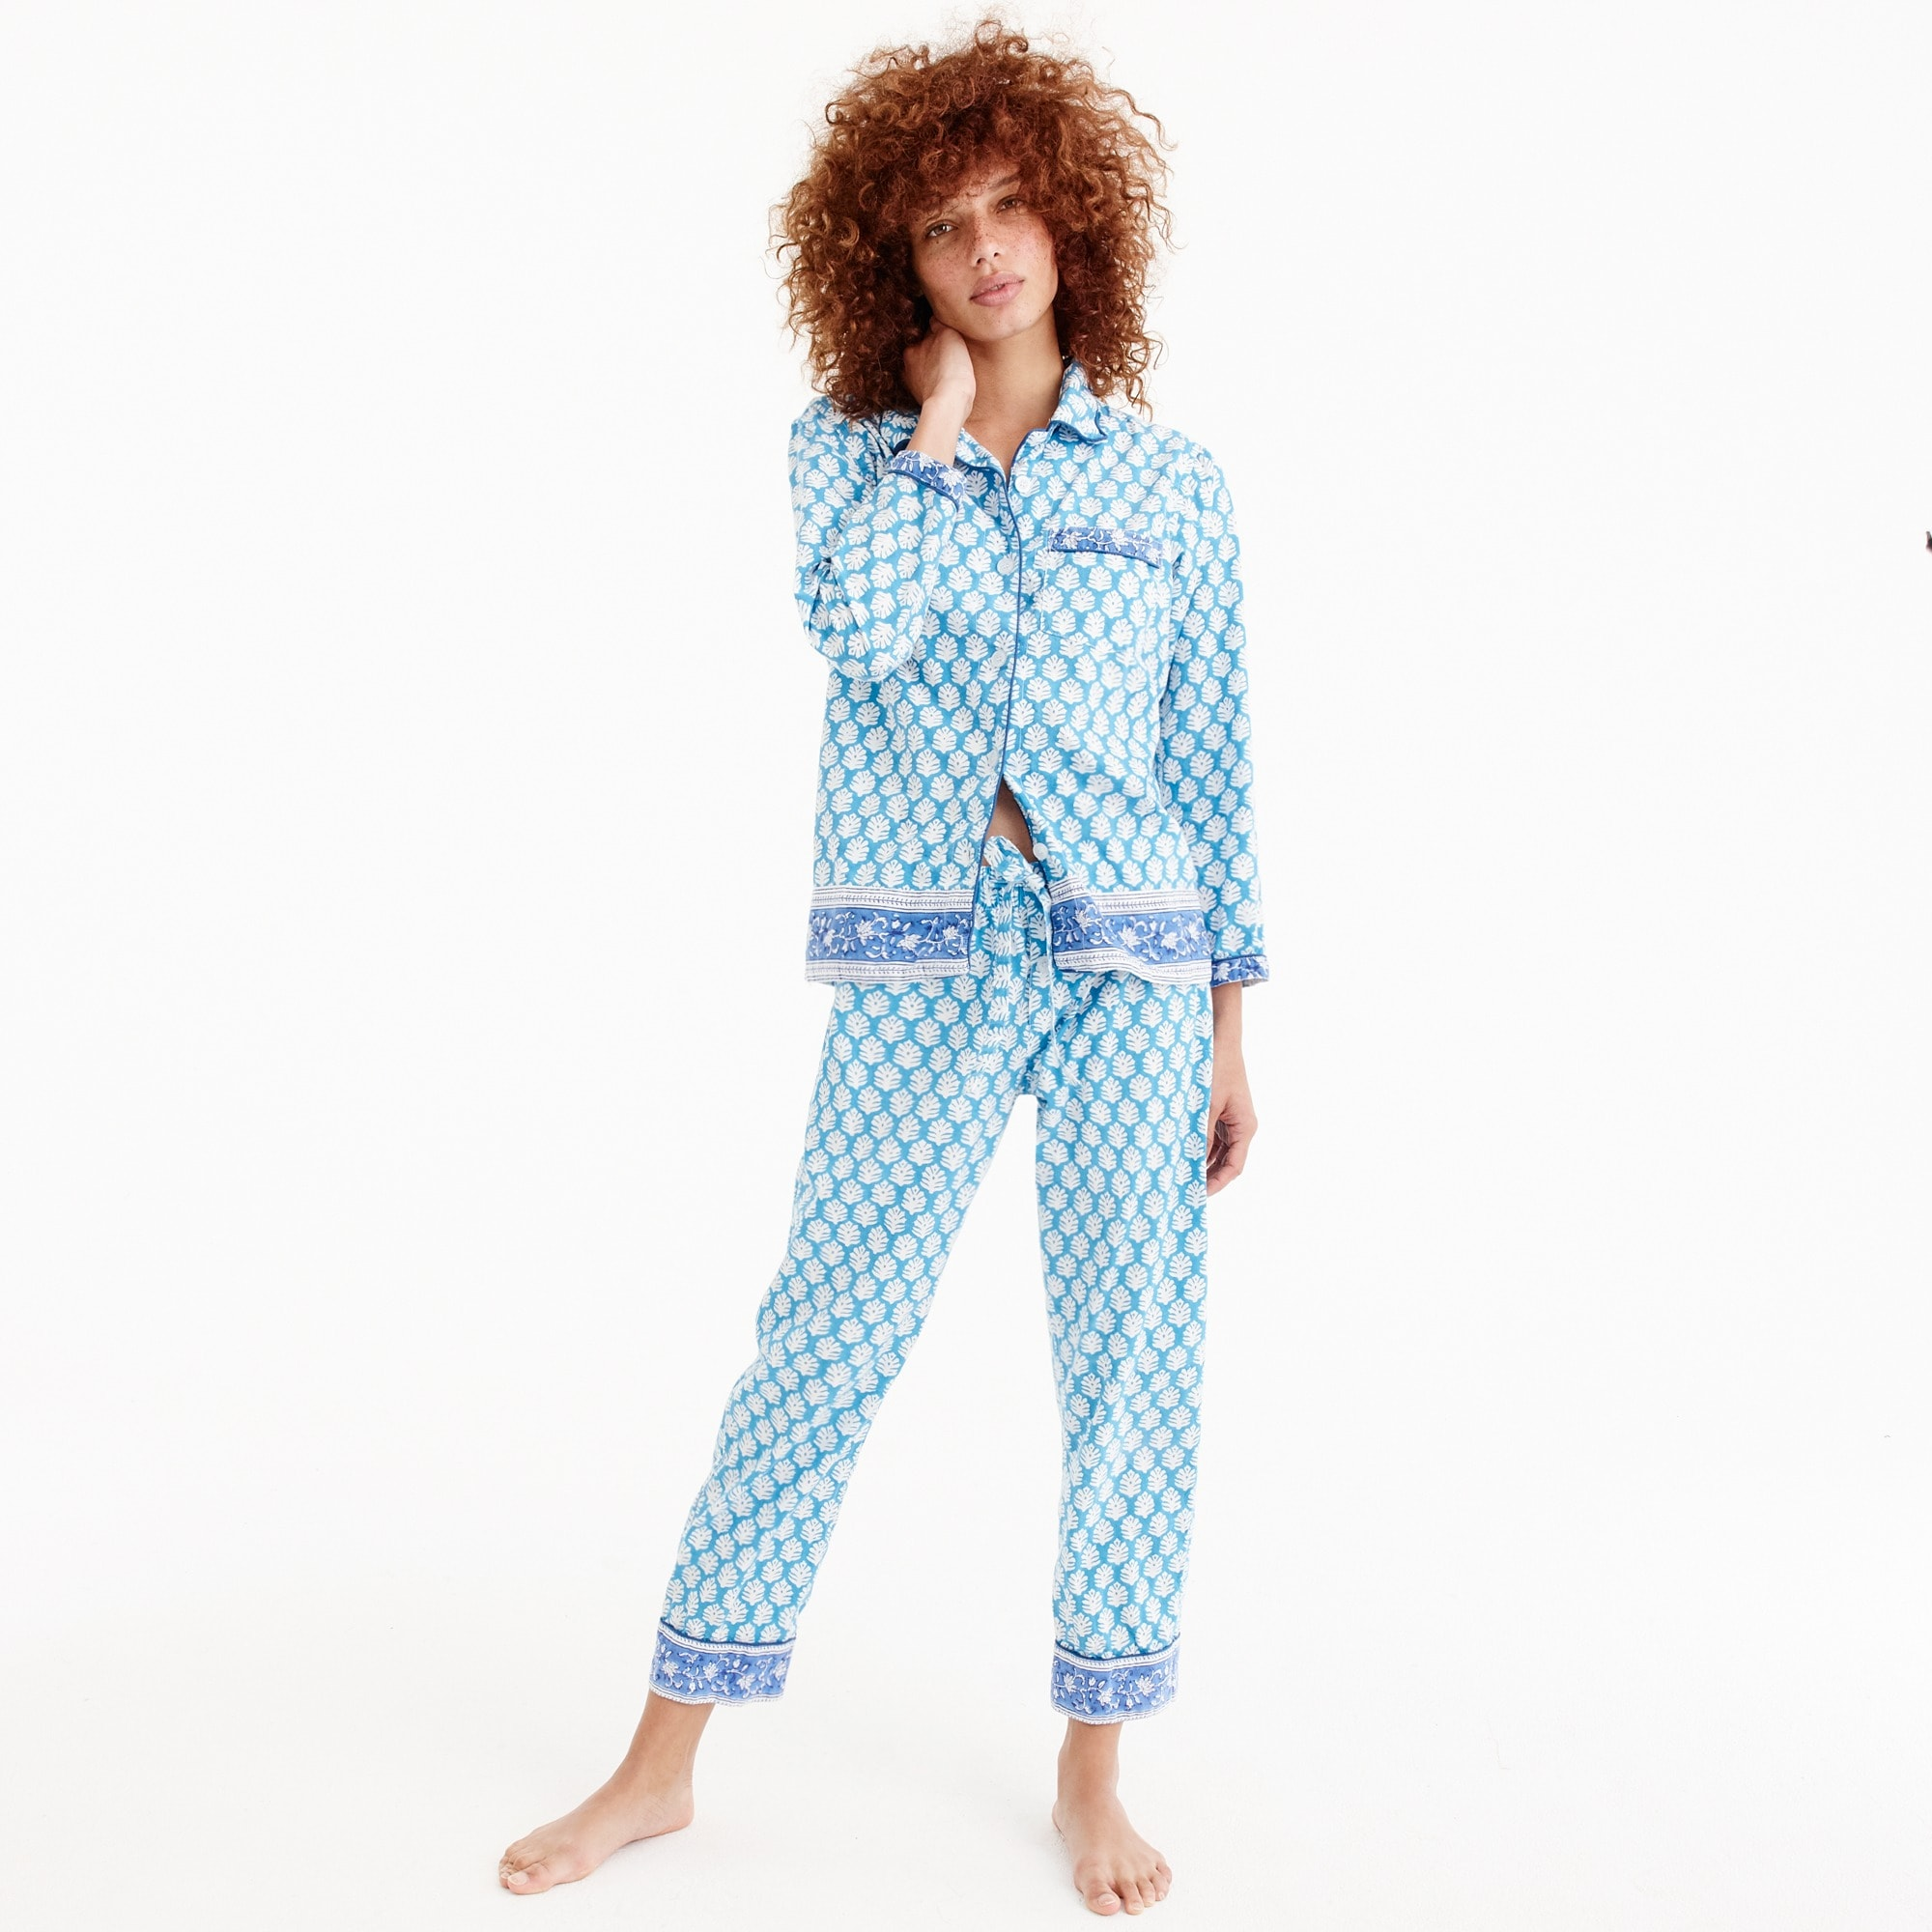 SZ Blockprints™ for J.Crew sleep set